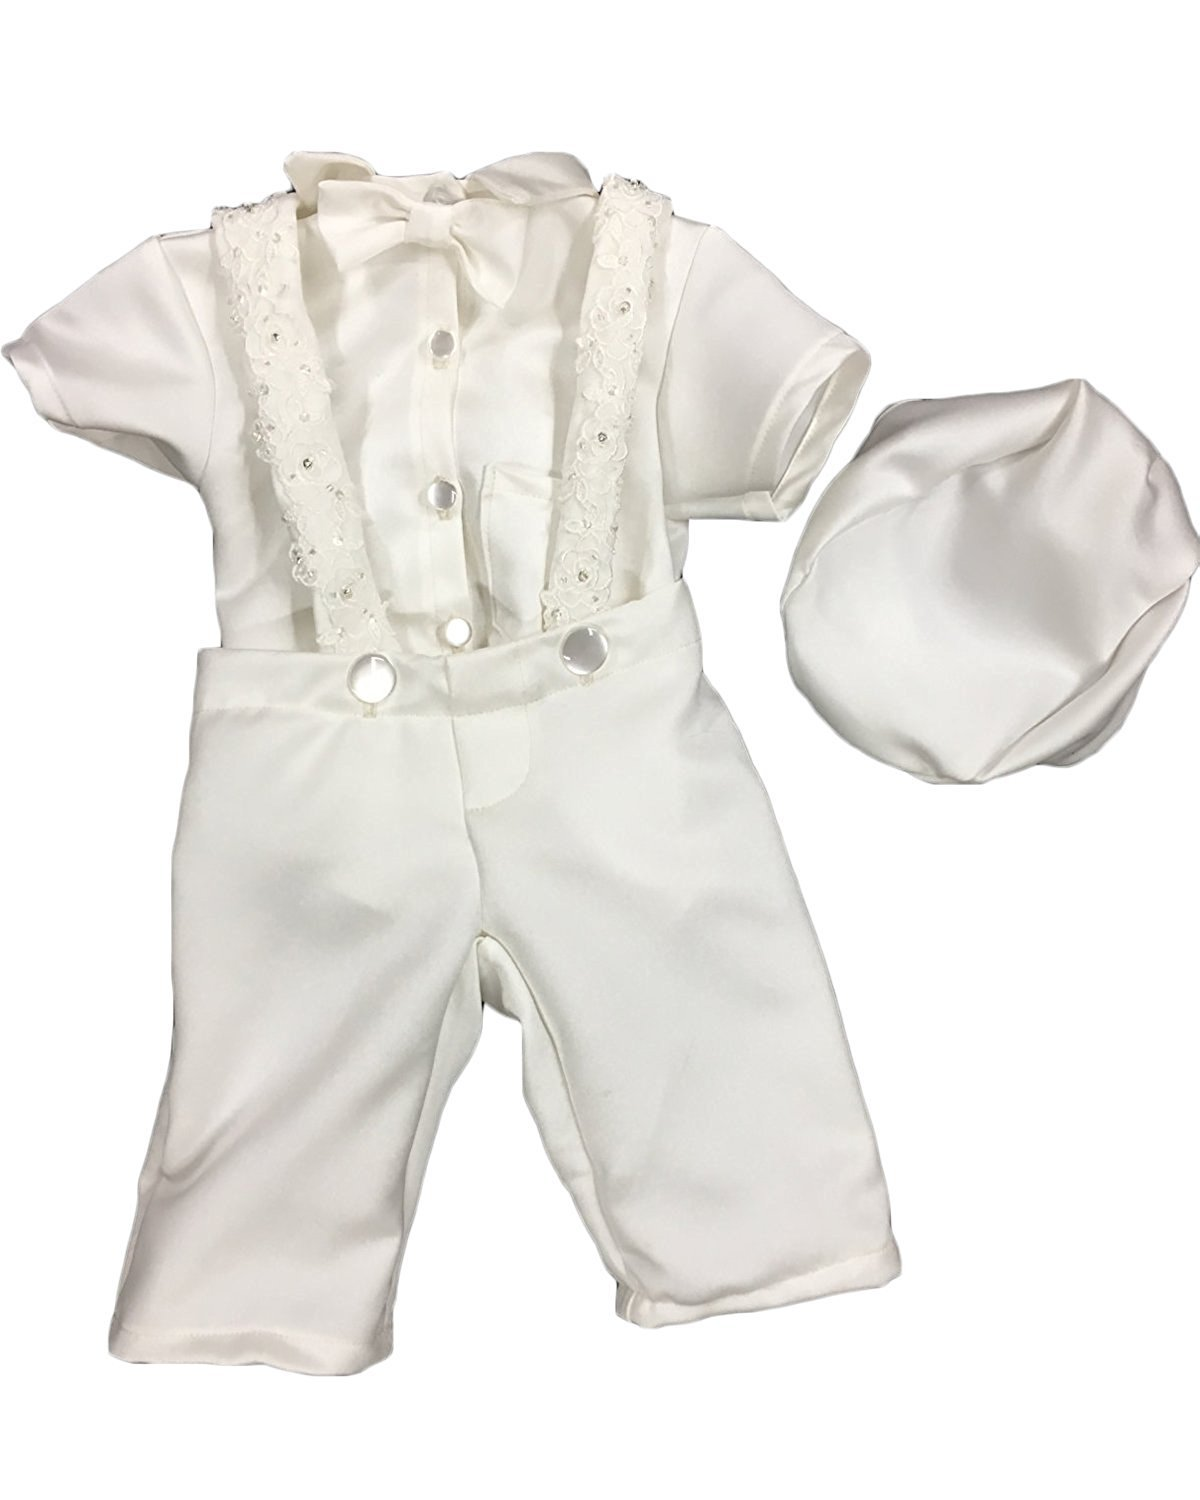 Newdeve Baby Boys Christening Outfit Baptism Infant 3 Pieces With Pants